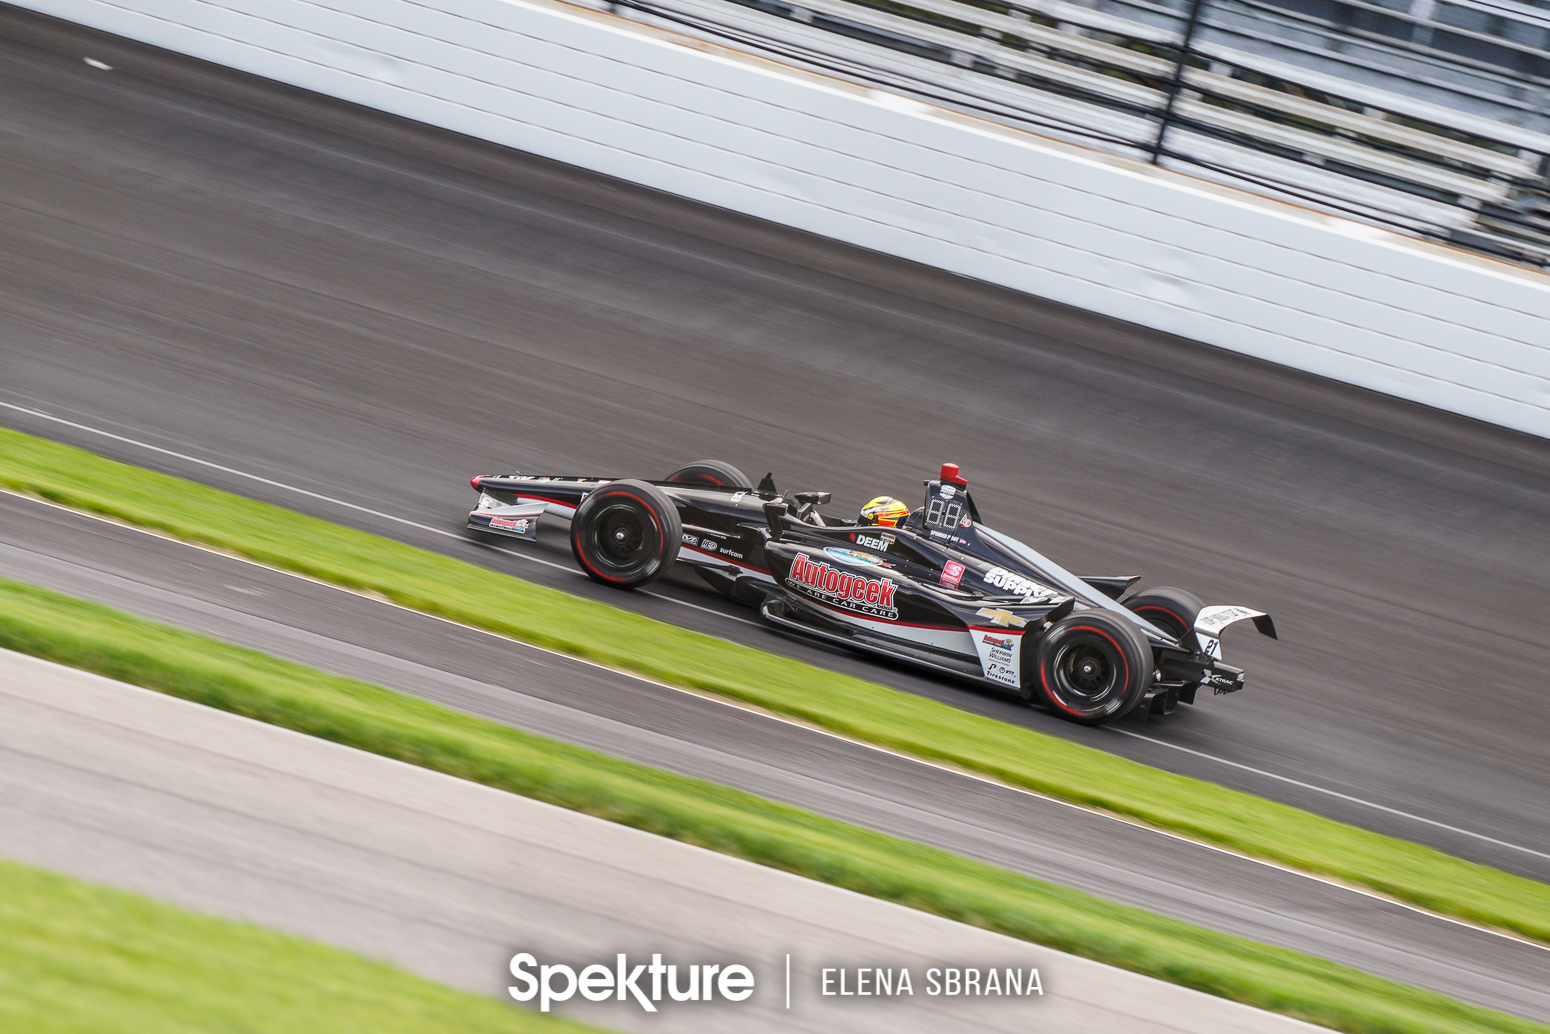 Earchphoto Sports -Spencer Pigot on track